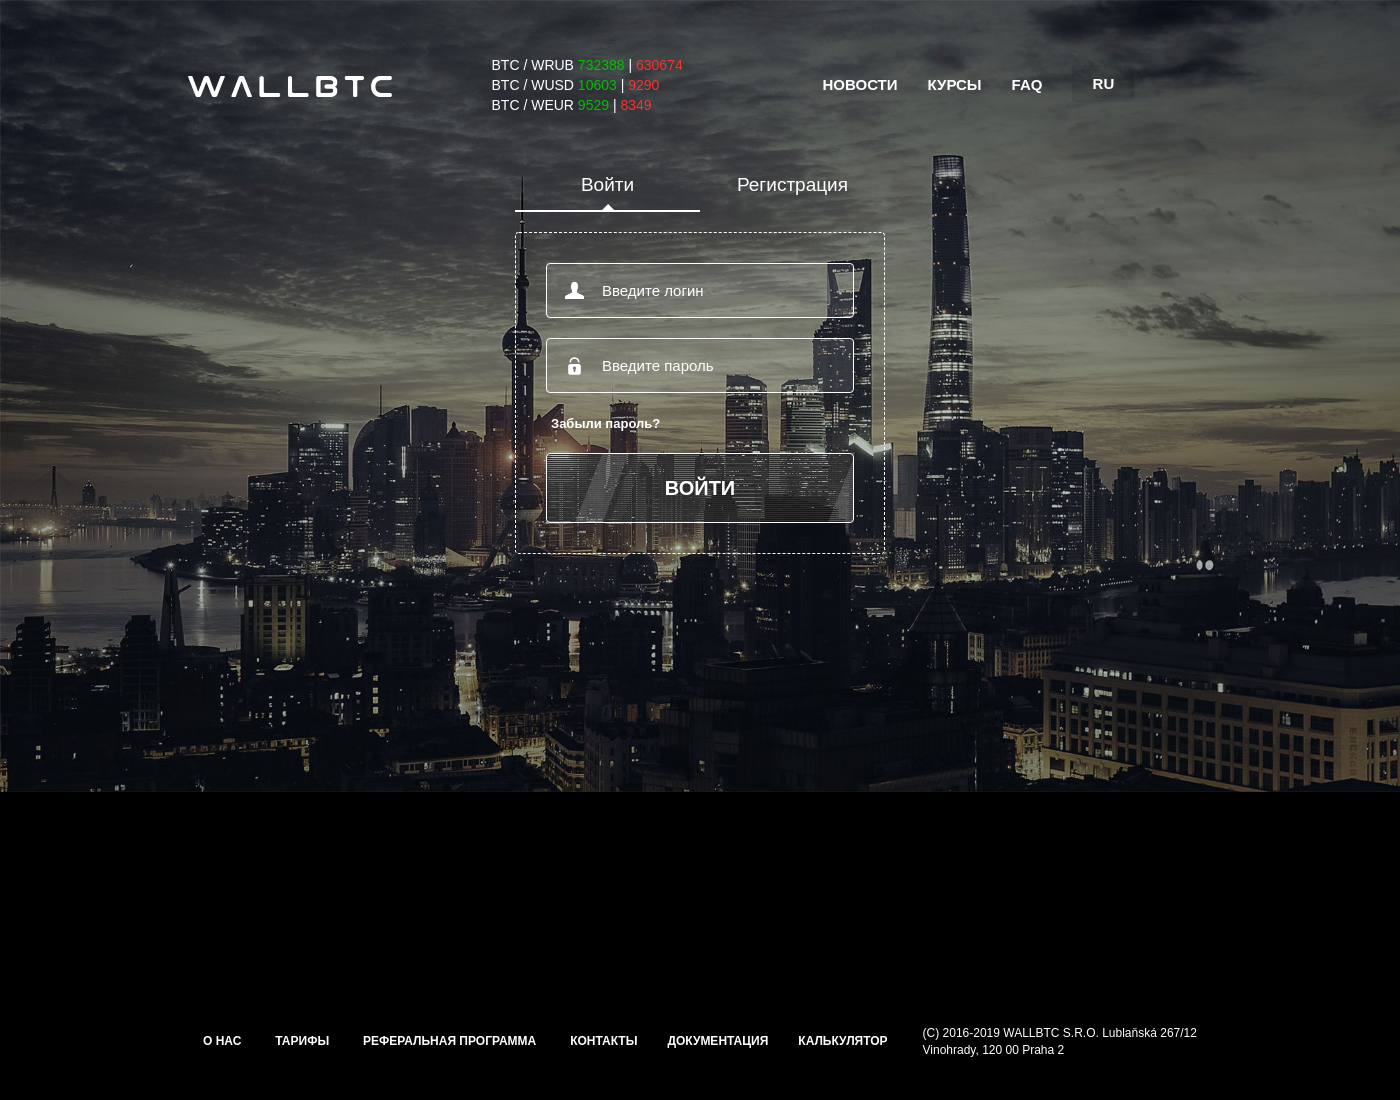 wallBTC user interface: the home page in English